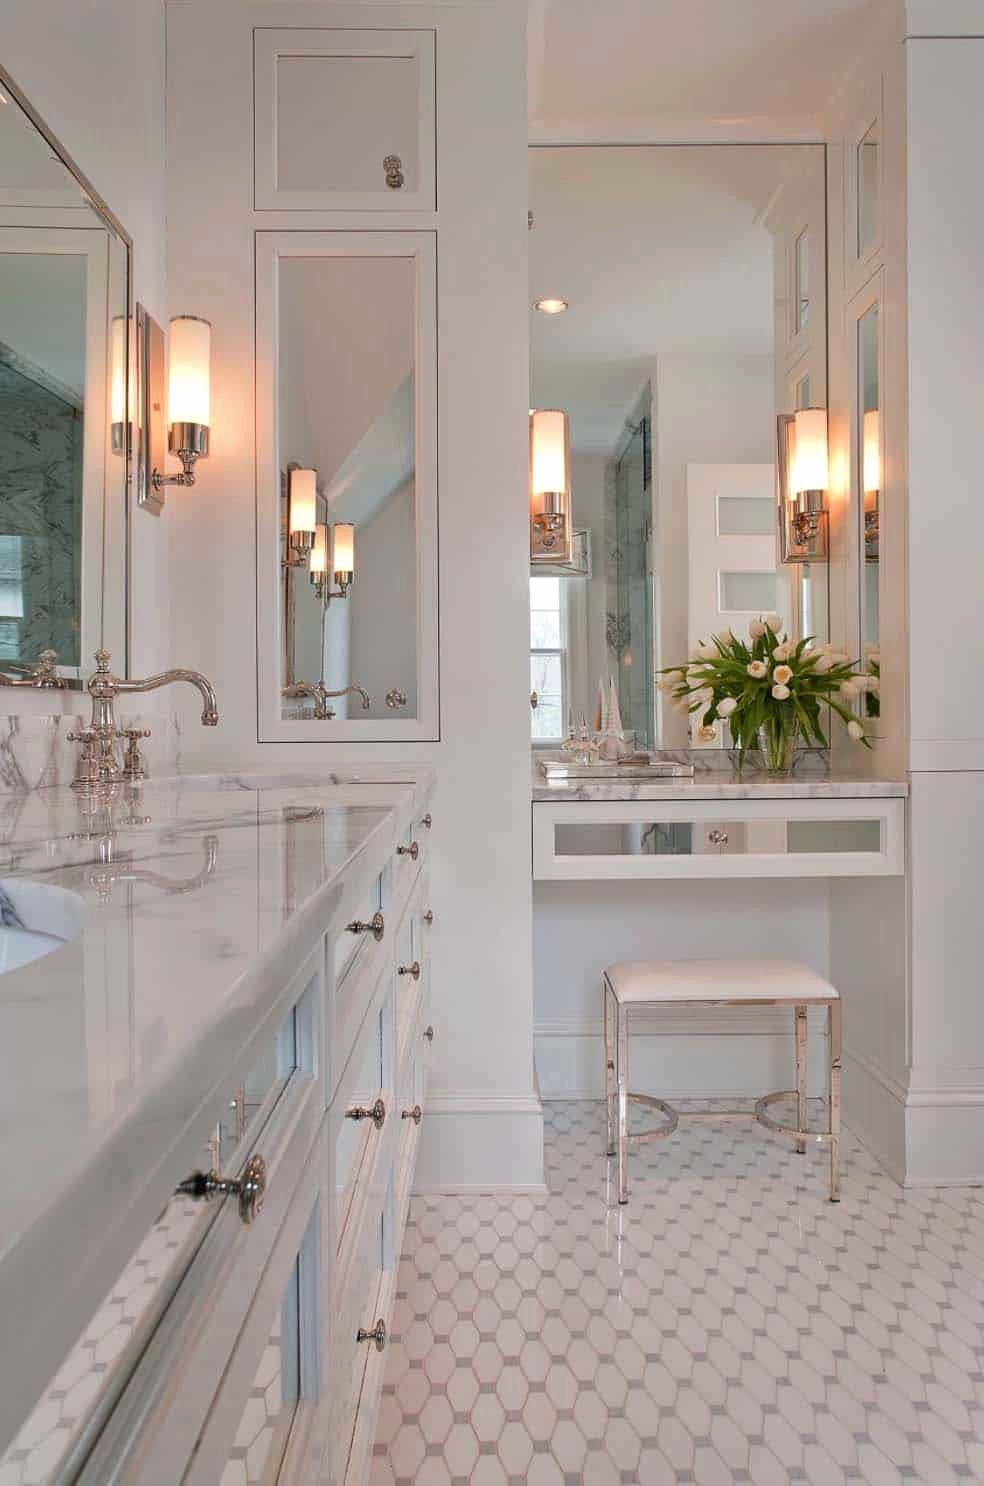 16 Bathroom Tile Ideas Traditional In 2020 Traditional Bathroom